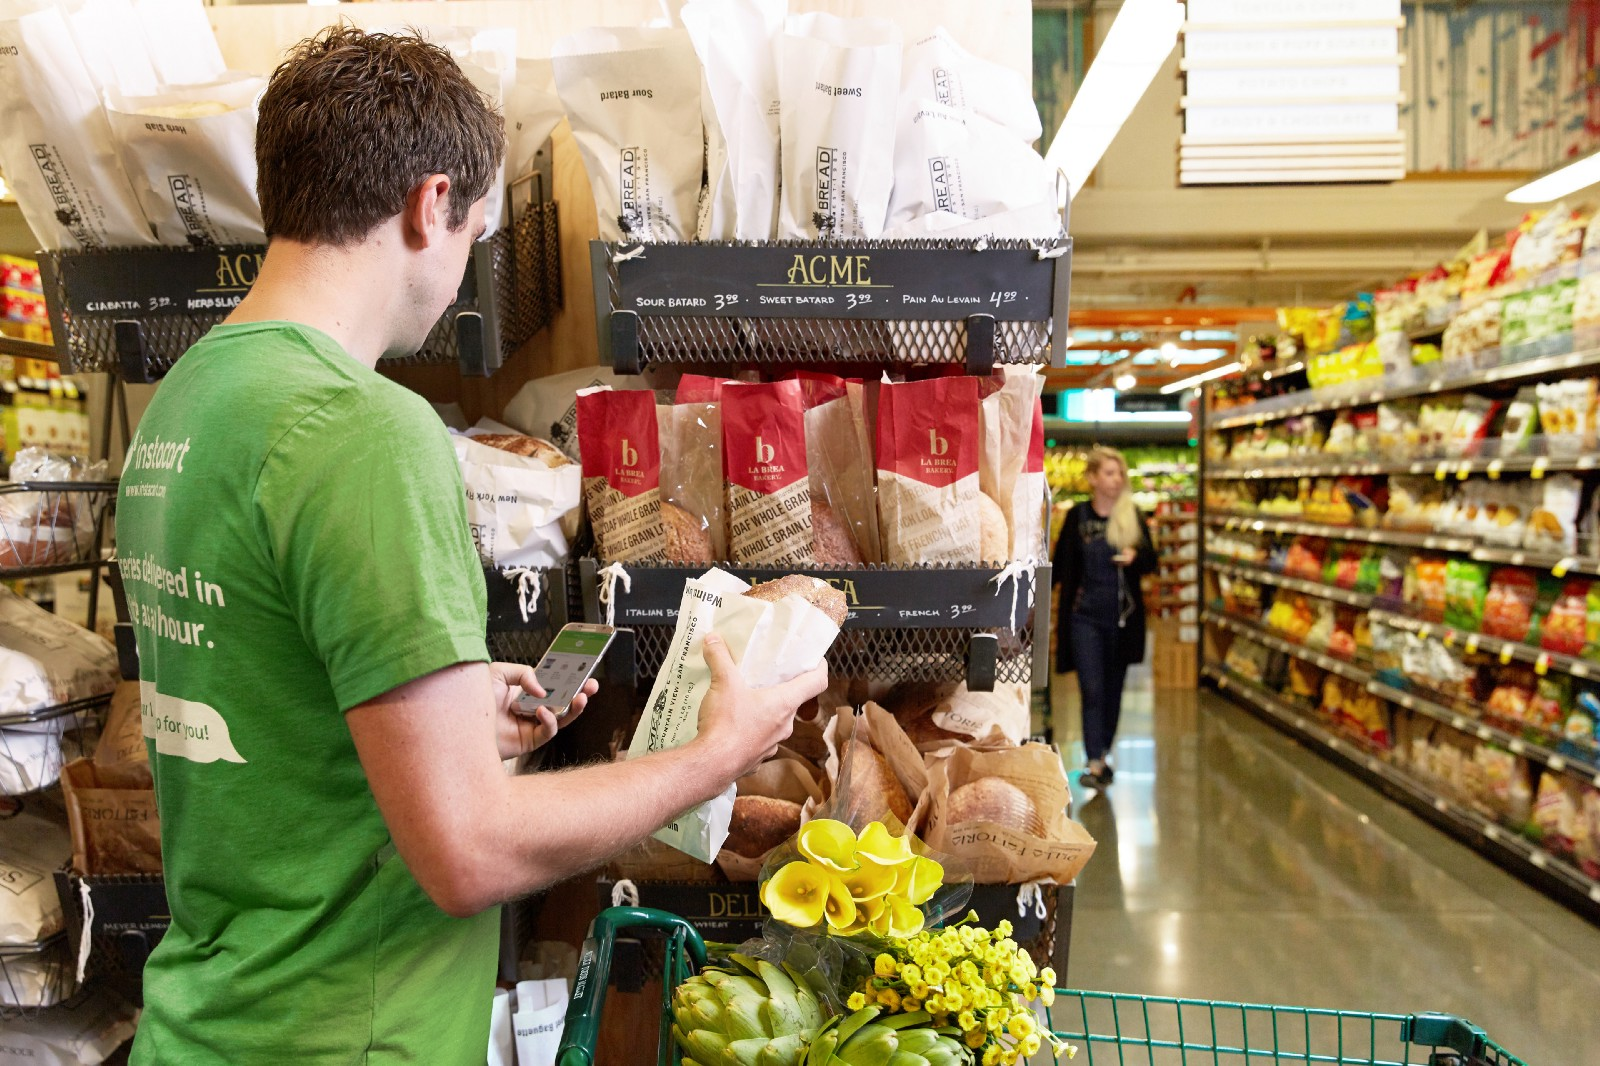 Grocery Delivery firm Instacart raises $600M in new funding round